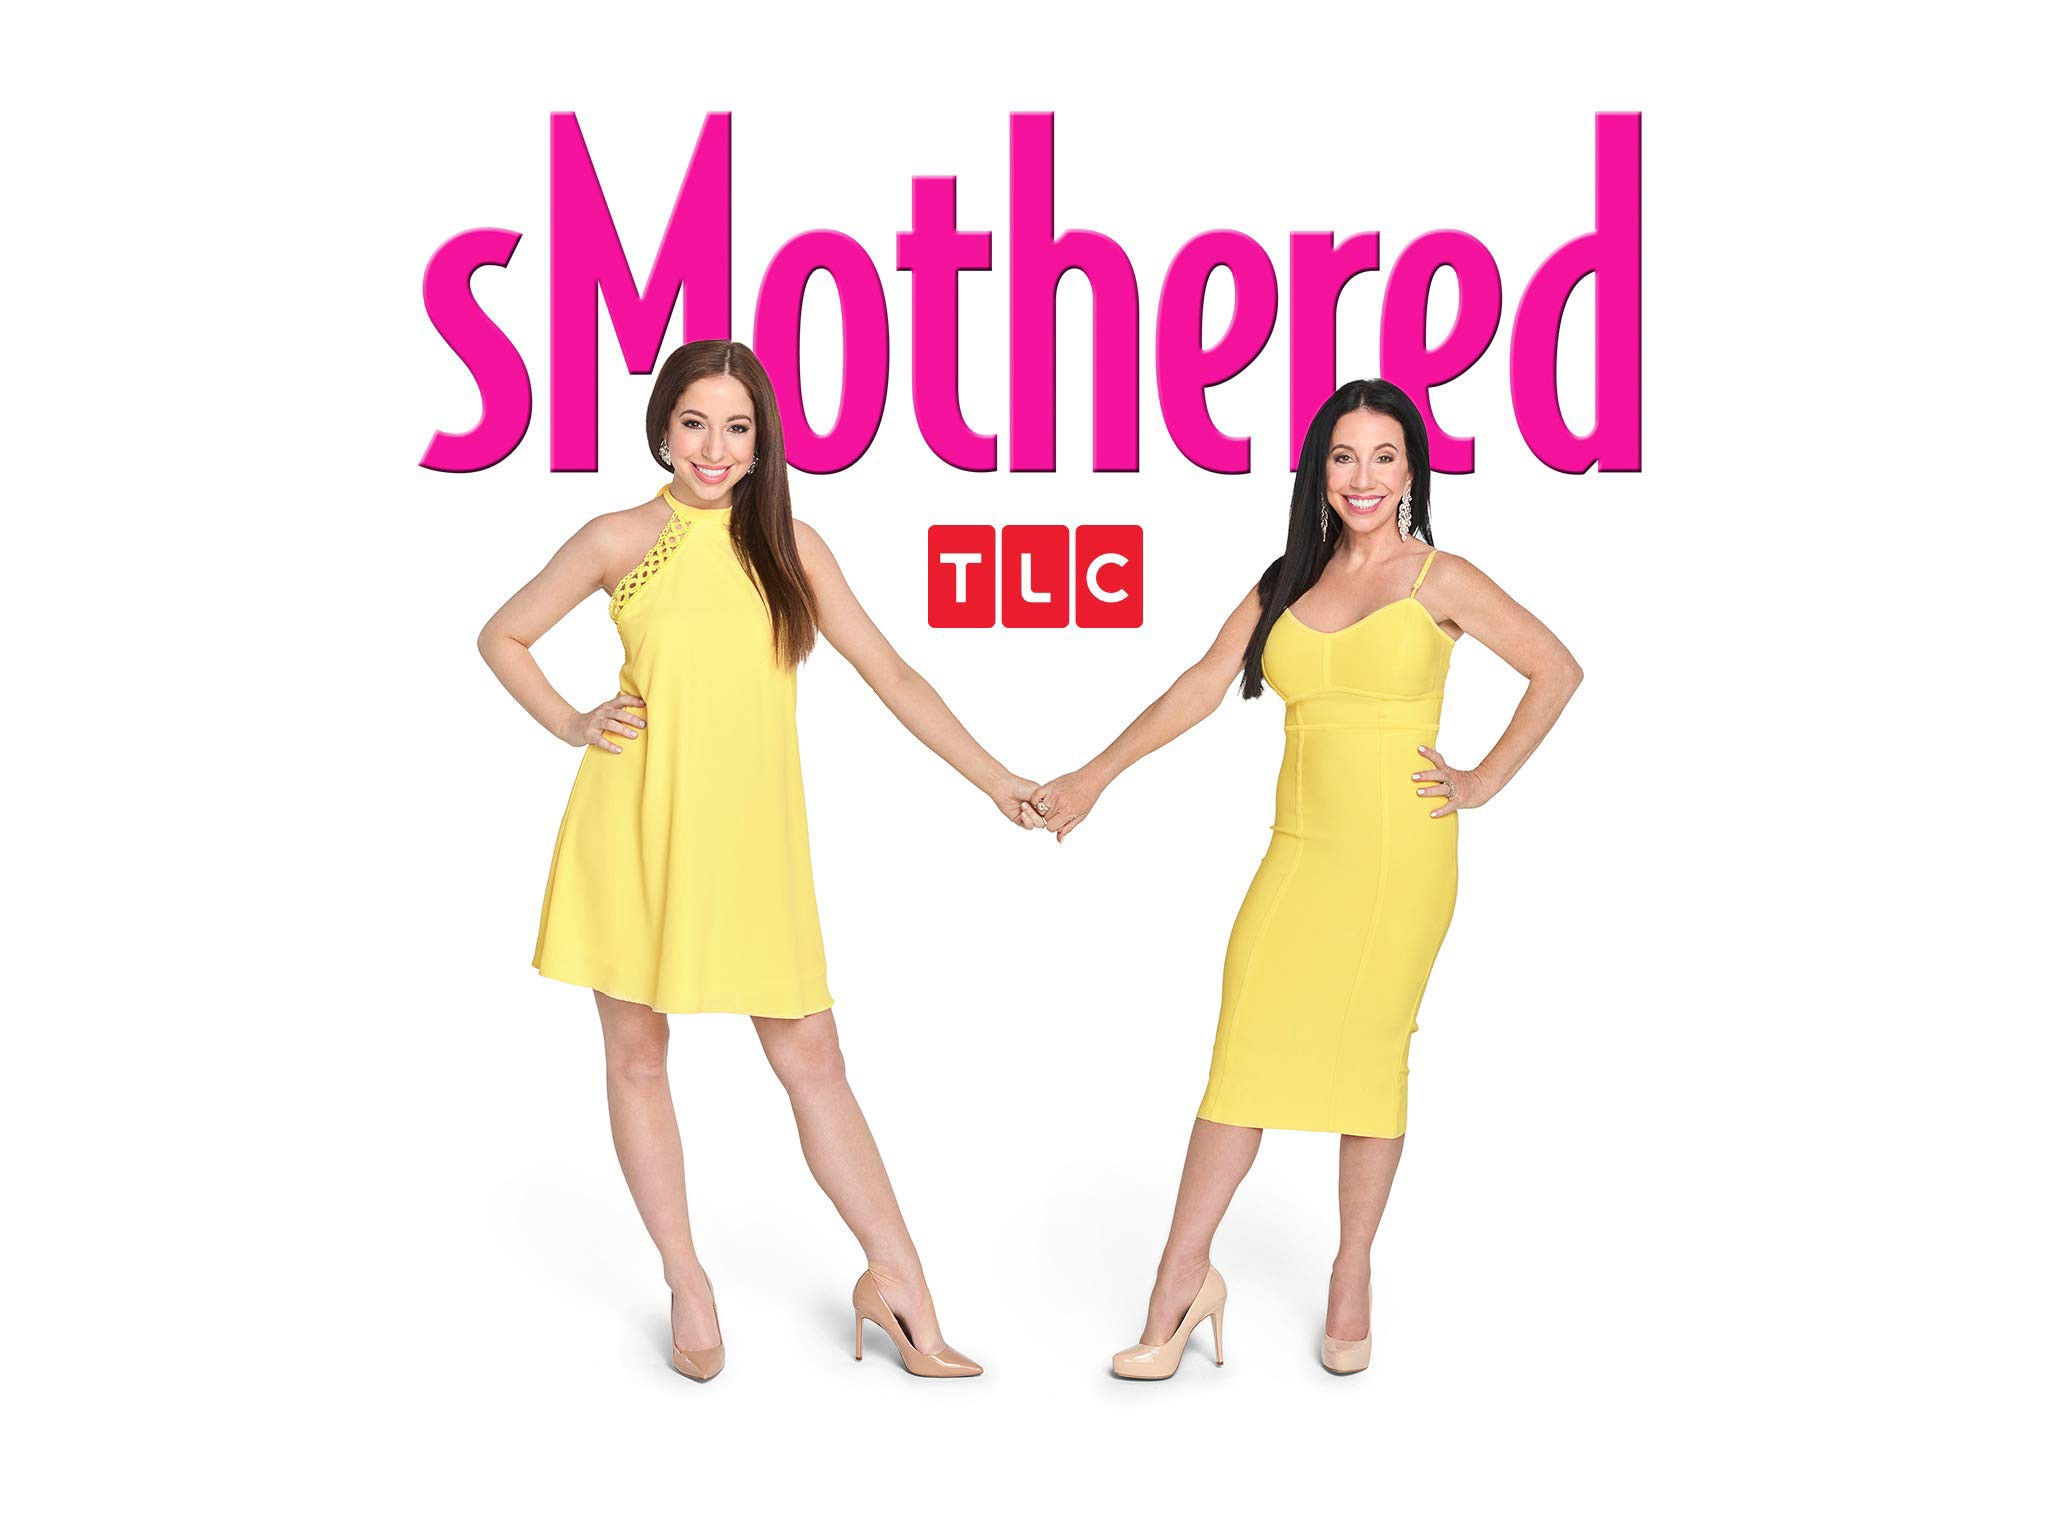 sMothered Season 2 Episode 2 (If Mom Can Do It, I Can Too) Plot and All You Need To Know